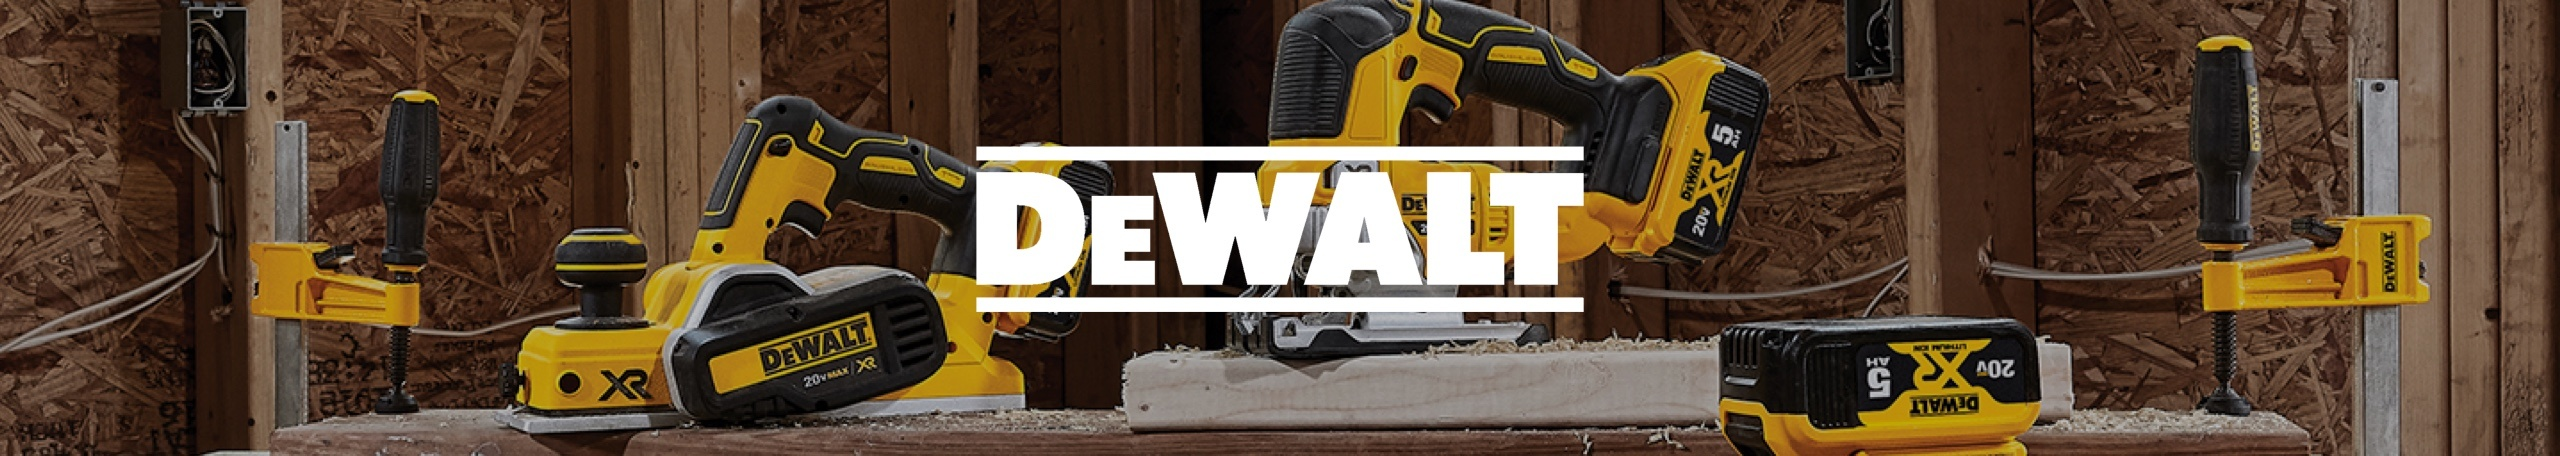 DeWALT power equipment with logo